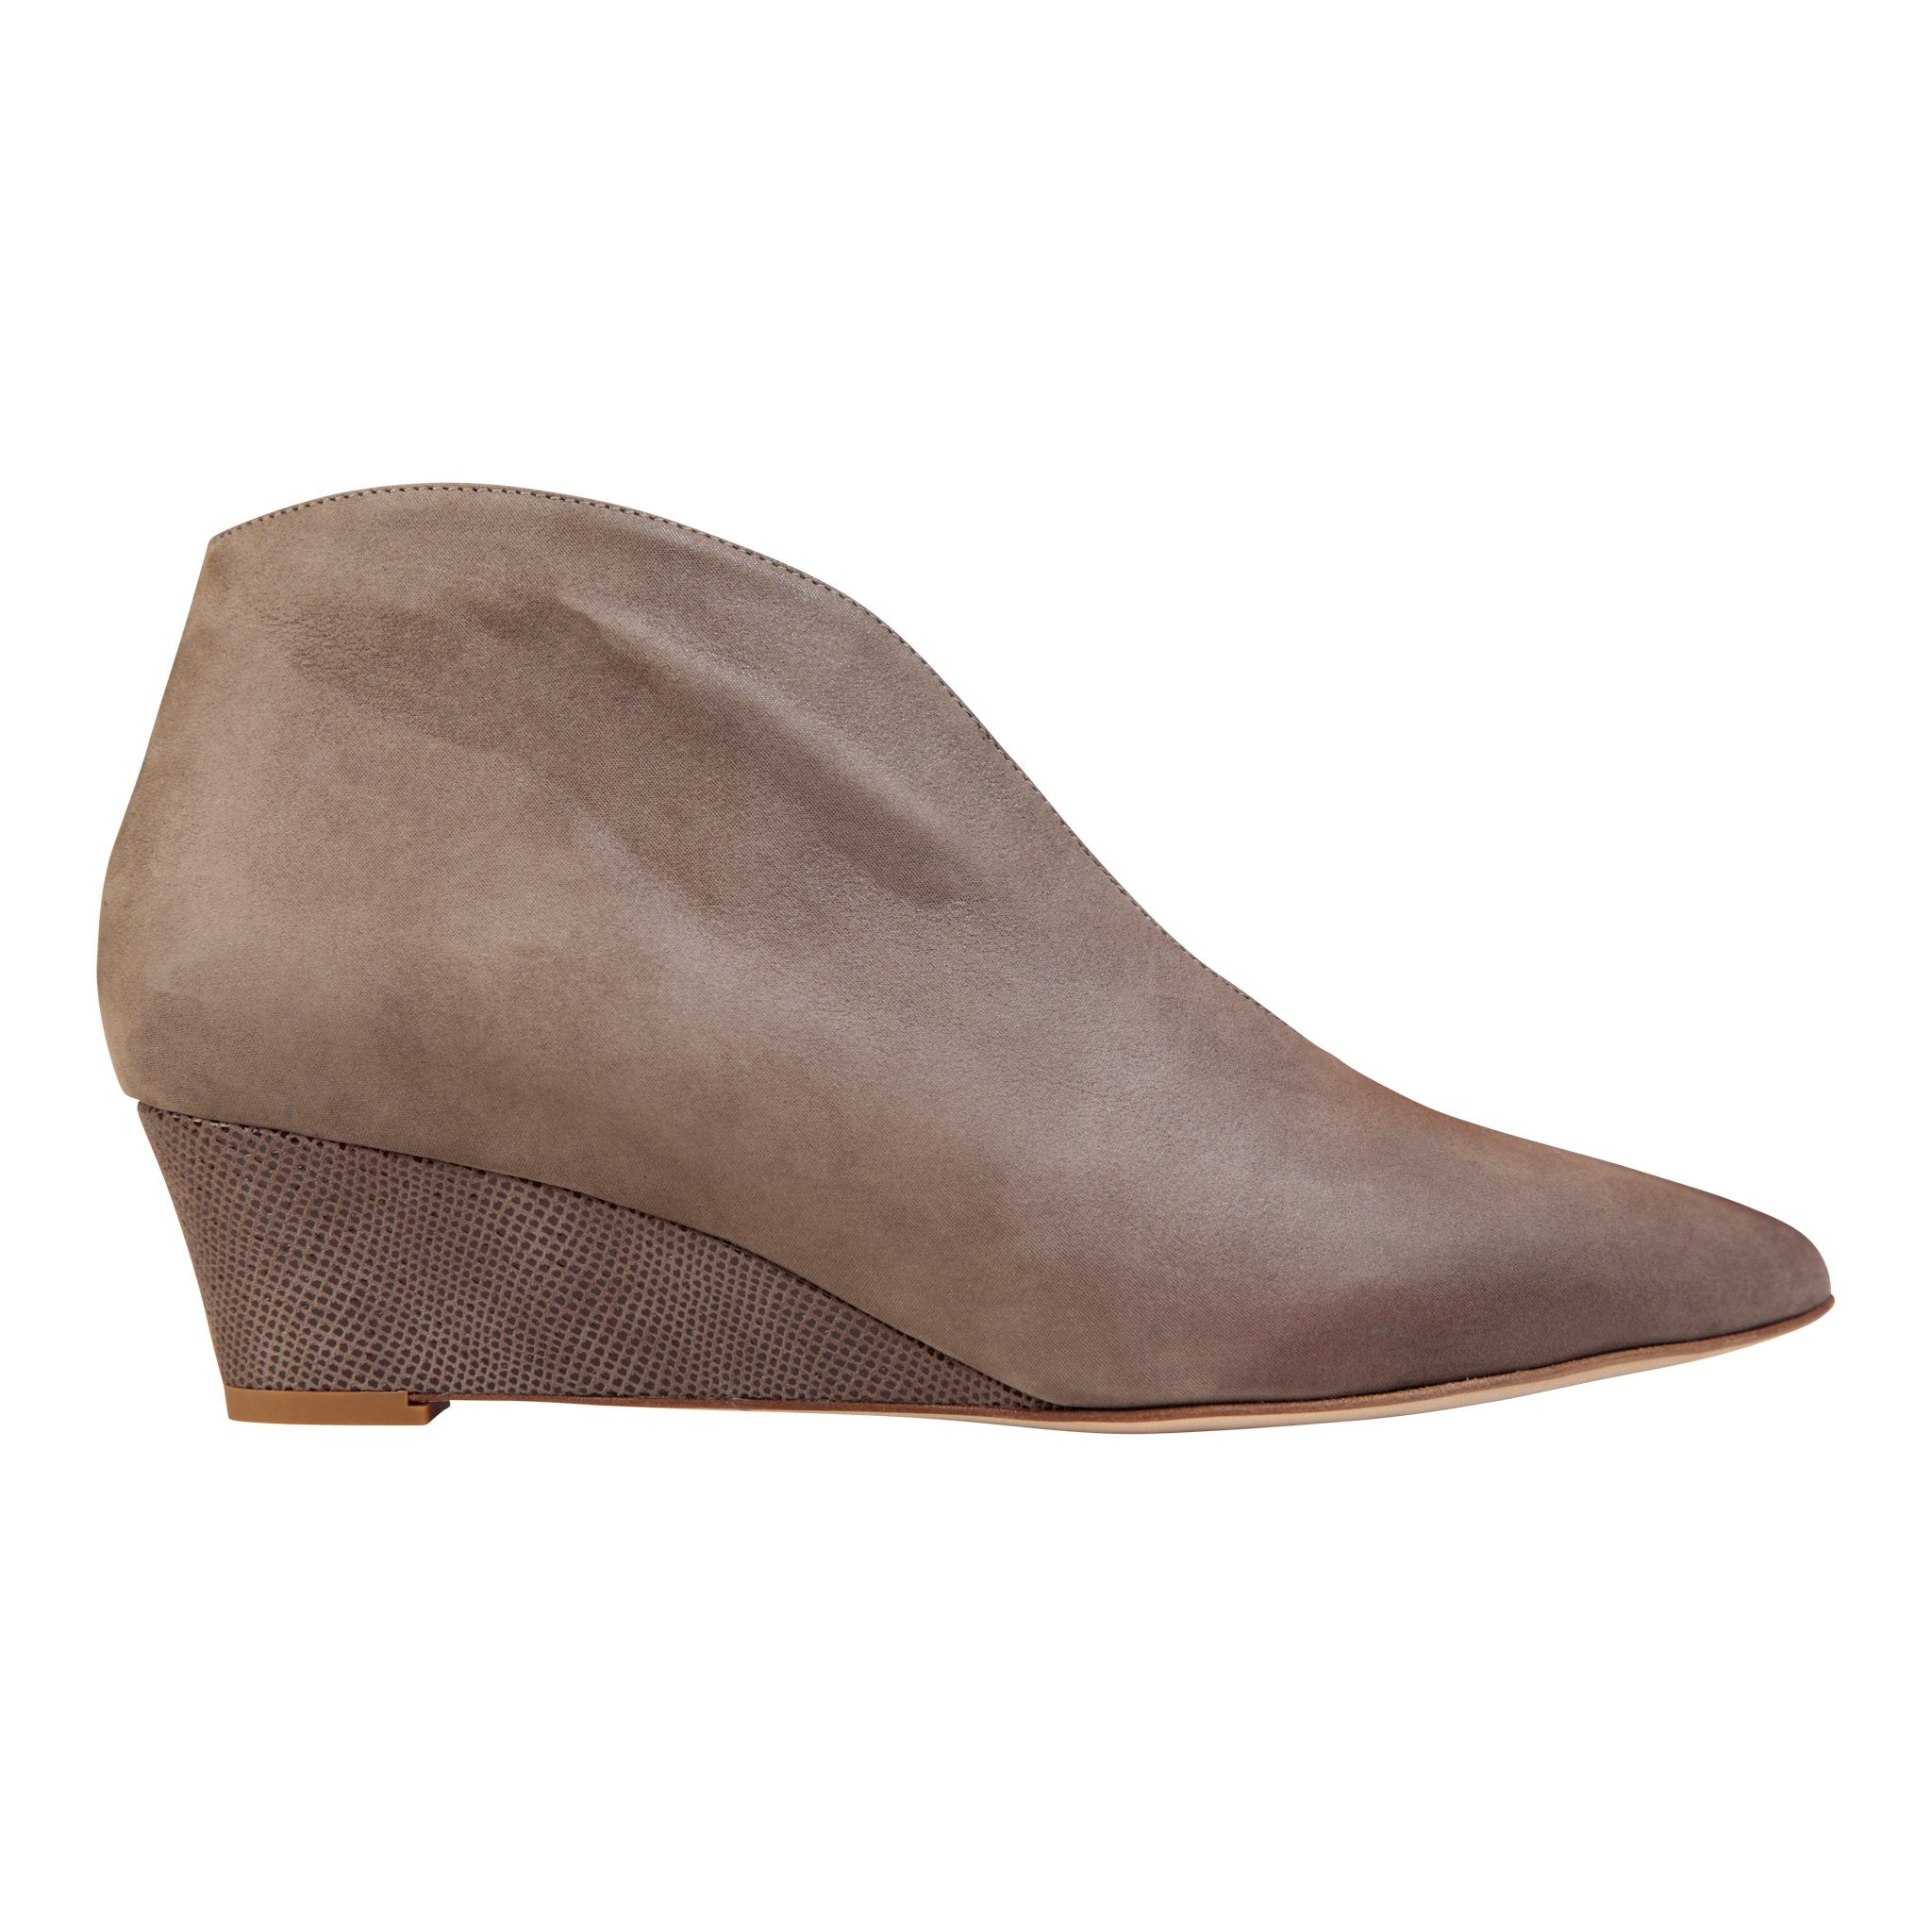 URBINO - Hydra + Karung Taupe, VIAJIYU - Women's Hand Made Sustainable Luxury Shoes. Made in Italy. Made to Order.